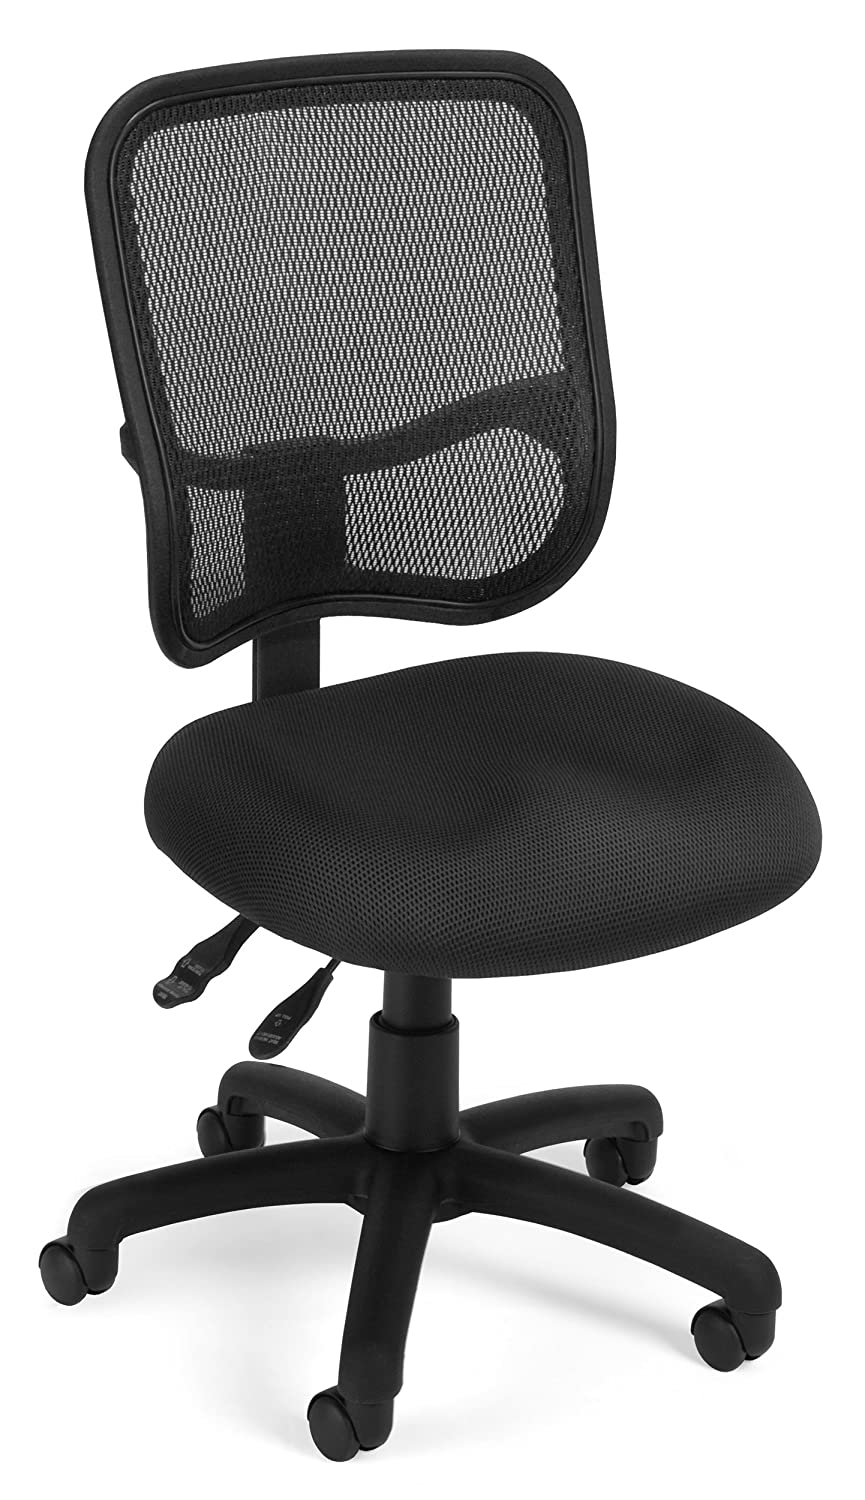 Amazon.com OFM Comfort Series Ergonomic Mesh Swivel Armless Task Chair Black Kitchen u0026 Dining  sc 1 st  Amazon.com & Amazon.com: OFM Comfort Series Ergonomic Mesh Swivel Armless Task ...